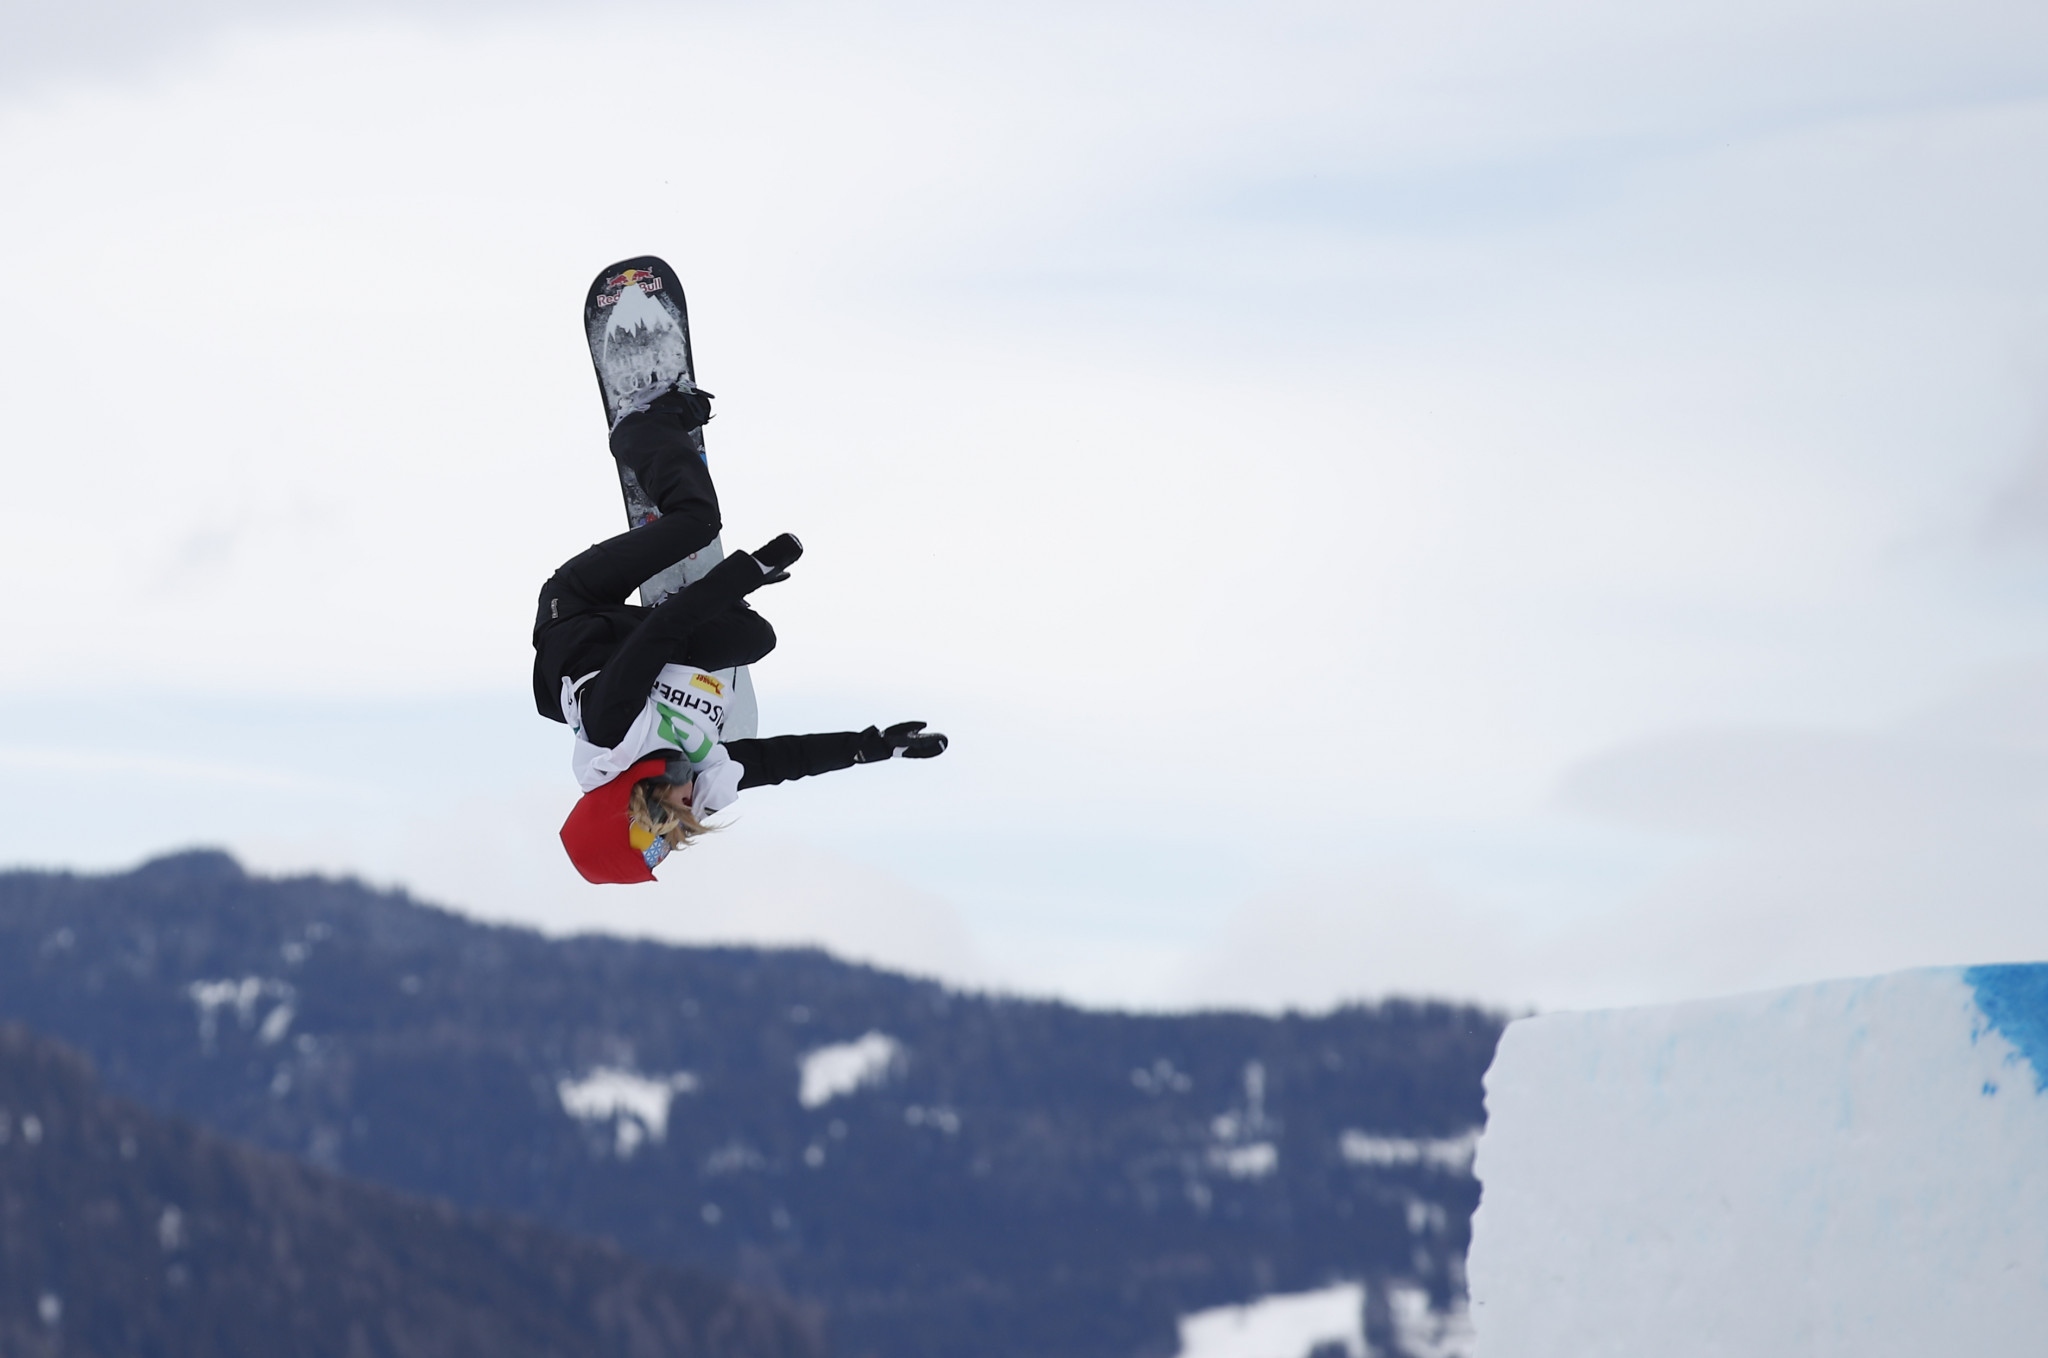 Anna Gasser of Austria is the favourite in the women's FIS Snowboard Big Air World Cup event in Modena ©Getty Images